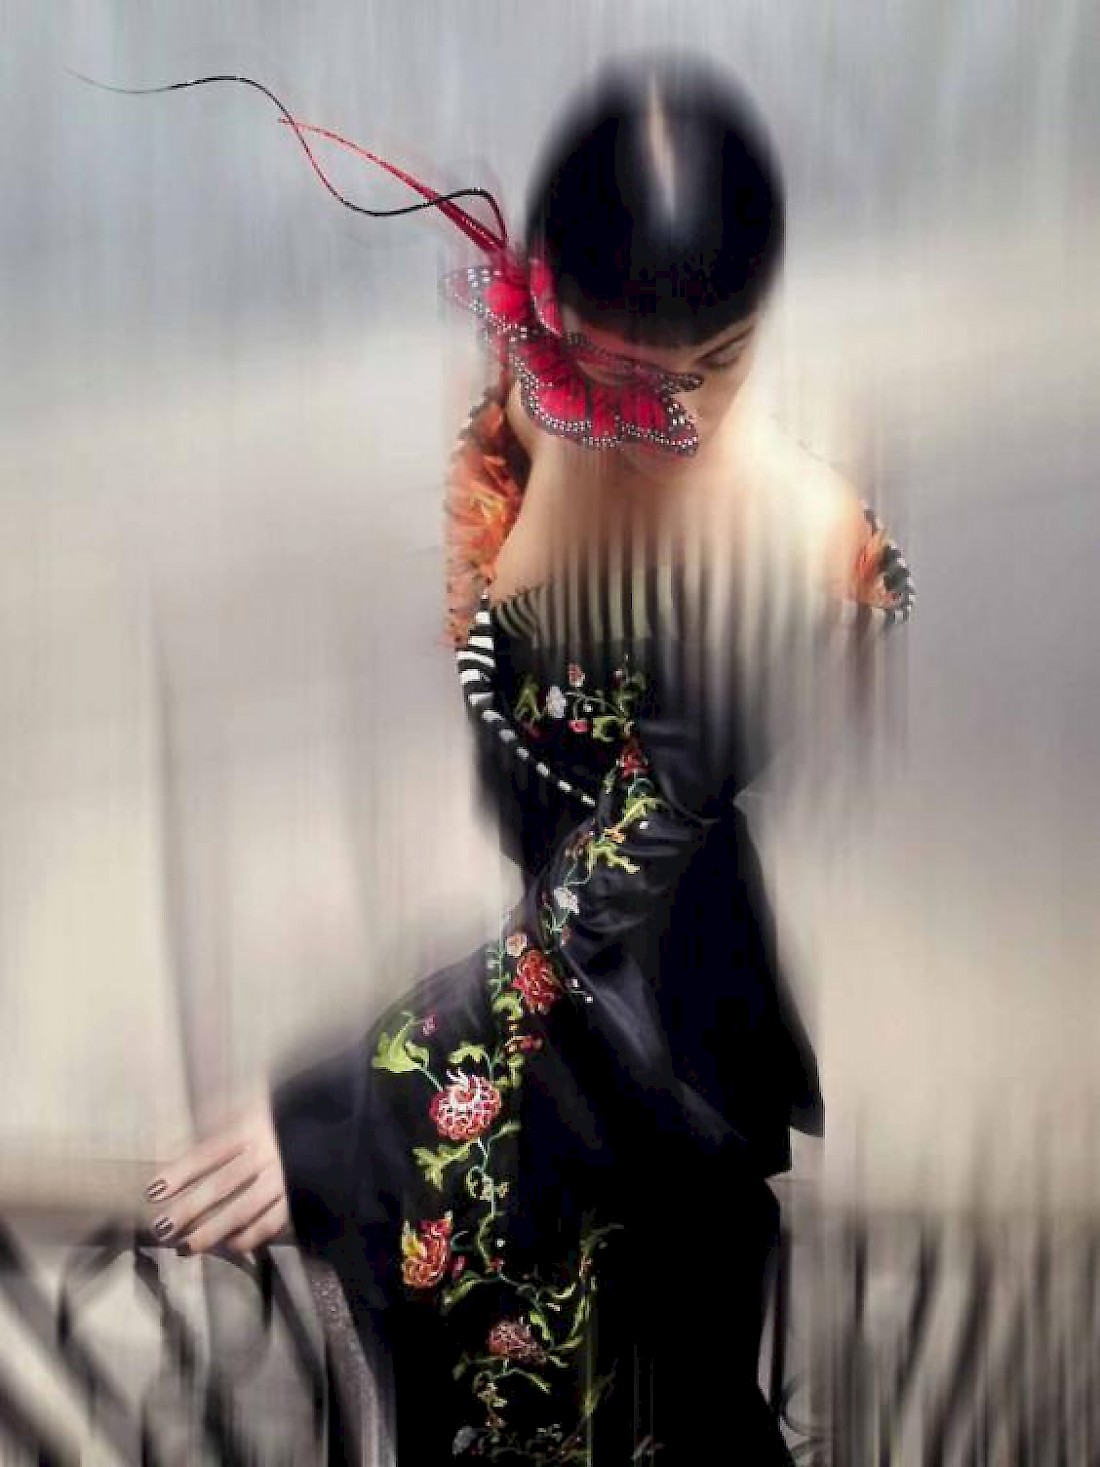 nick-knight-interview-pioneer-on-why-he-doesnt-want-to-be-called-a-photographer-38946-kb.1100x0.jpg